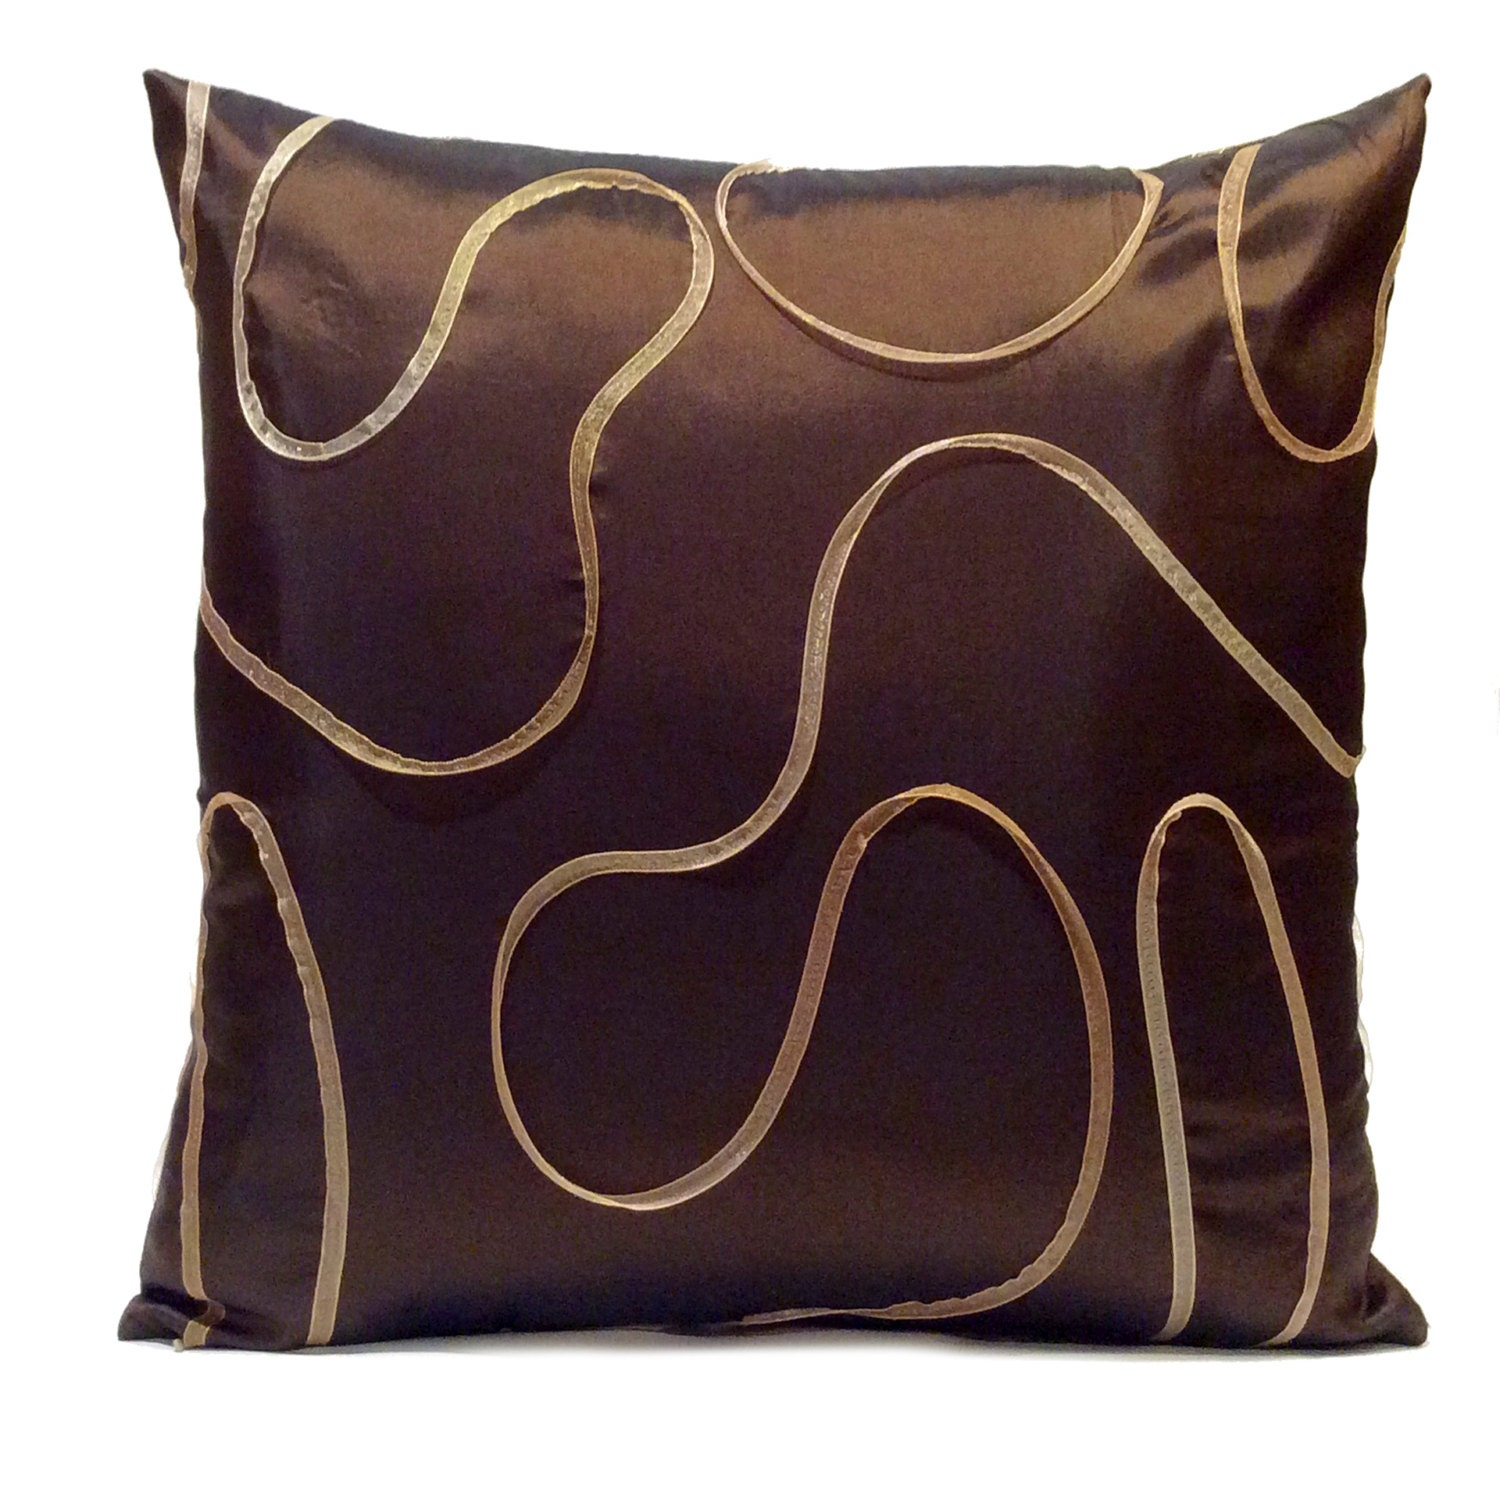 Dark Chocolate Brown Pillow Throw Pillow Cover Decorative